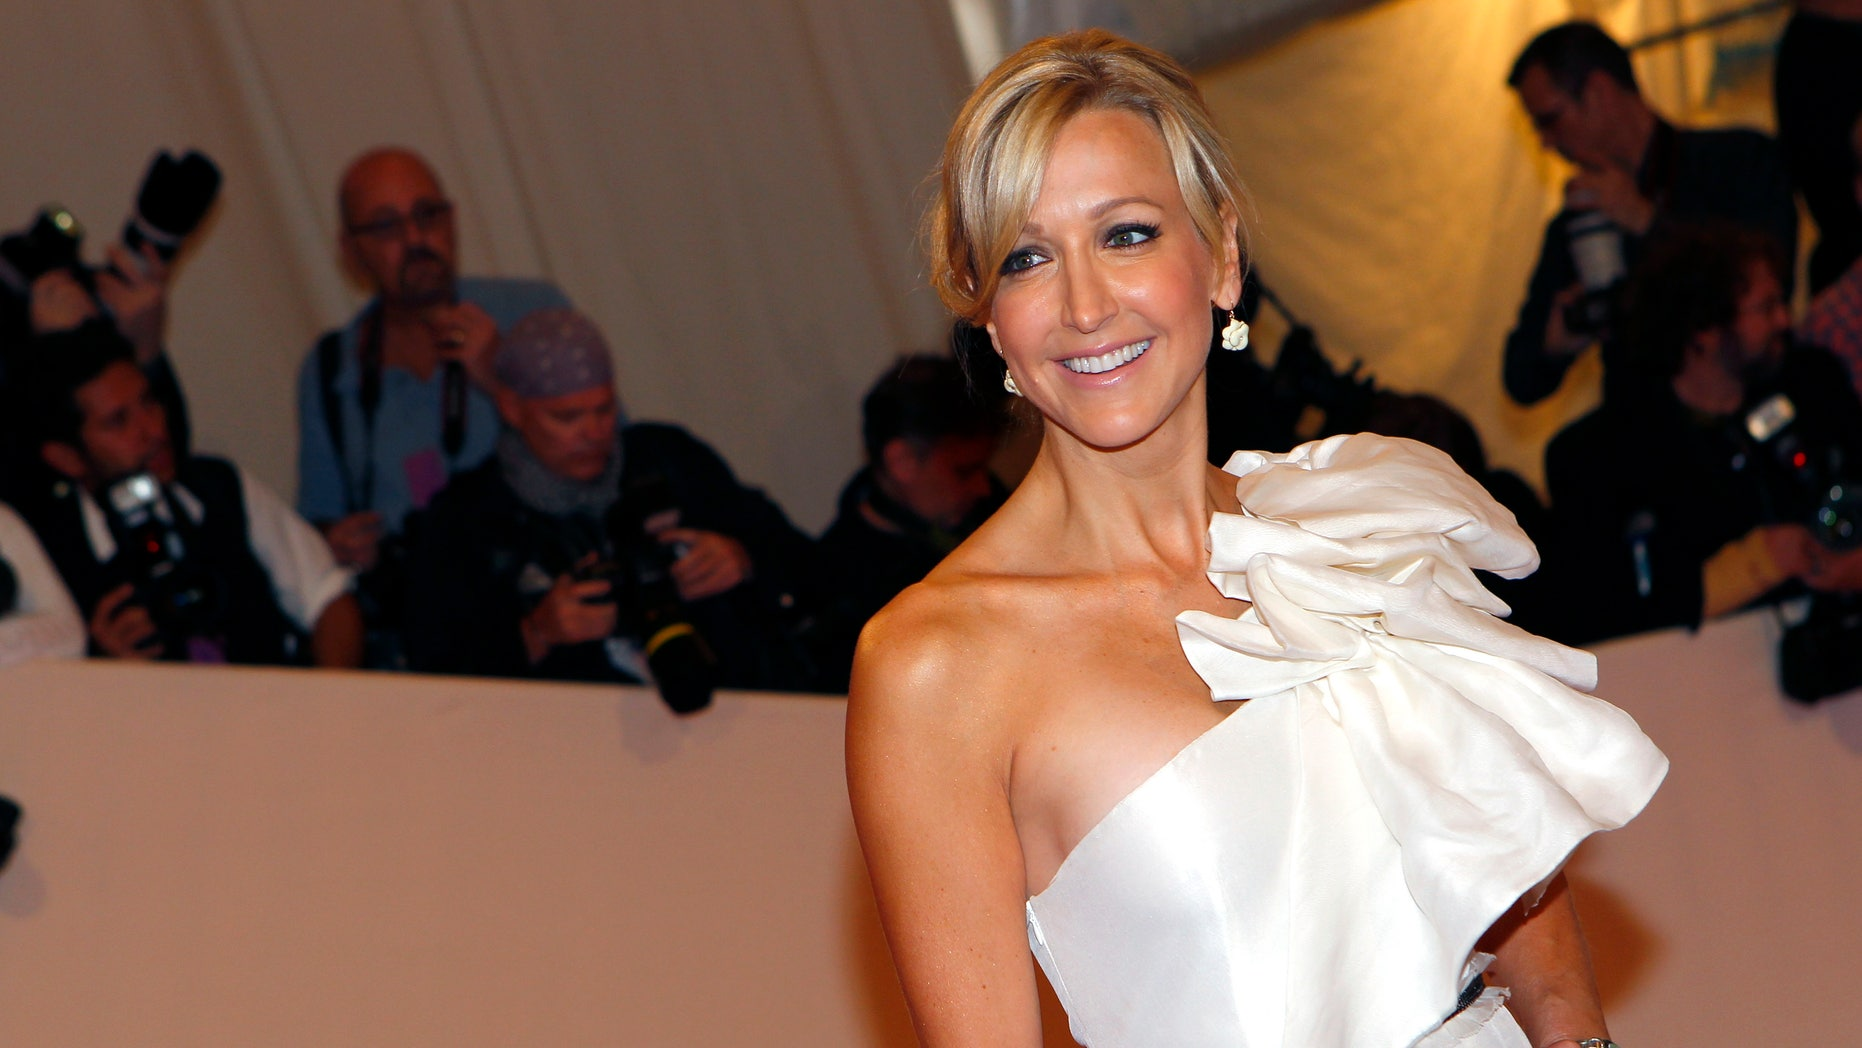 May 2, 2011. Television hostess Lara Spencer arrives at the Metropolitan Museum of Art Costume Institute Benefit celebrating the opening of Alexander McQueen: Savage Beauty, in New York.